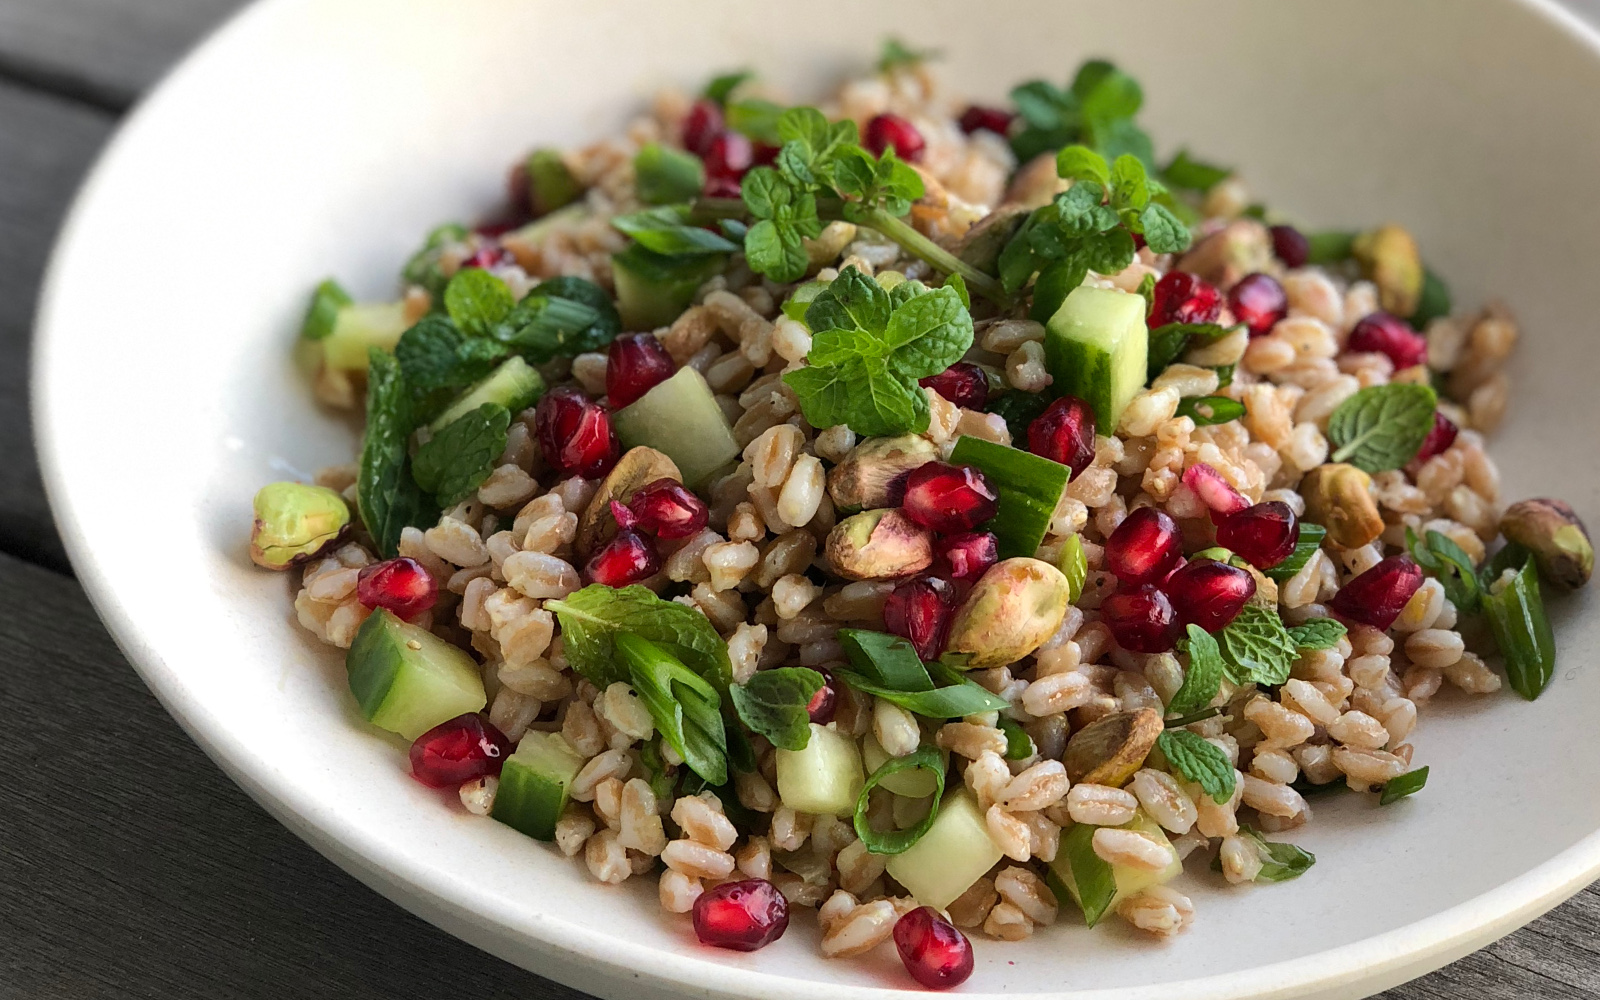 Lemon-Ginger Farro Salad with Pomegranate and Pistachios [Vegan, Gluten-Free] with fresh mint and cucumber